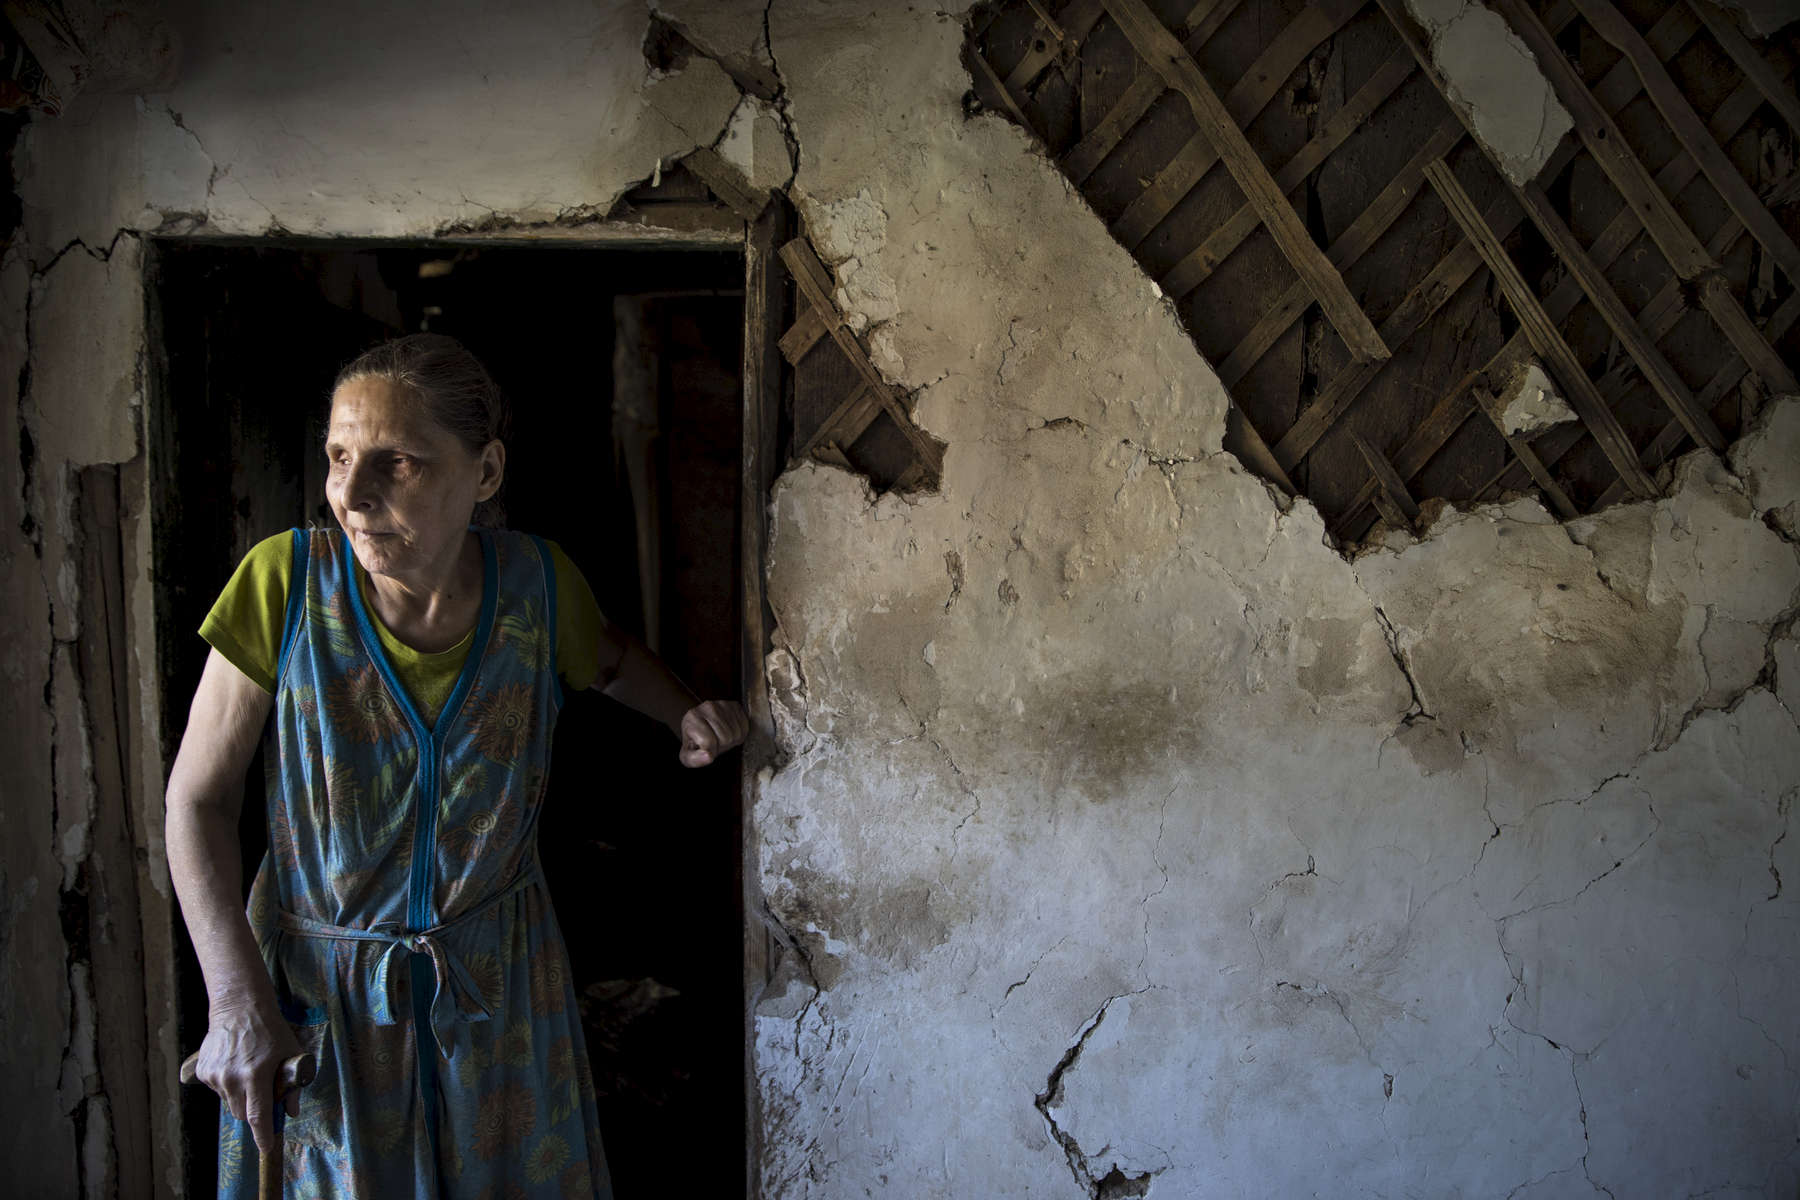 Avdiivika: Elena Parshyna,age 66, is blind and lives alone,feeling depressed and lonely after her husband had a heart attack in April. Her son also died late in 2017 from the same fate. To make matter worse, Both were buried in a small cemetery that is mined and now too close to the military positions so she never can go visit the graves. The home was shelled last year, still damaged but Elena refuses to leave. Her remaining family - daughter and a sister all live on the other side of the contact line in Makeyevka city controlled by pro-Russian separatists.